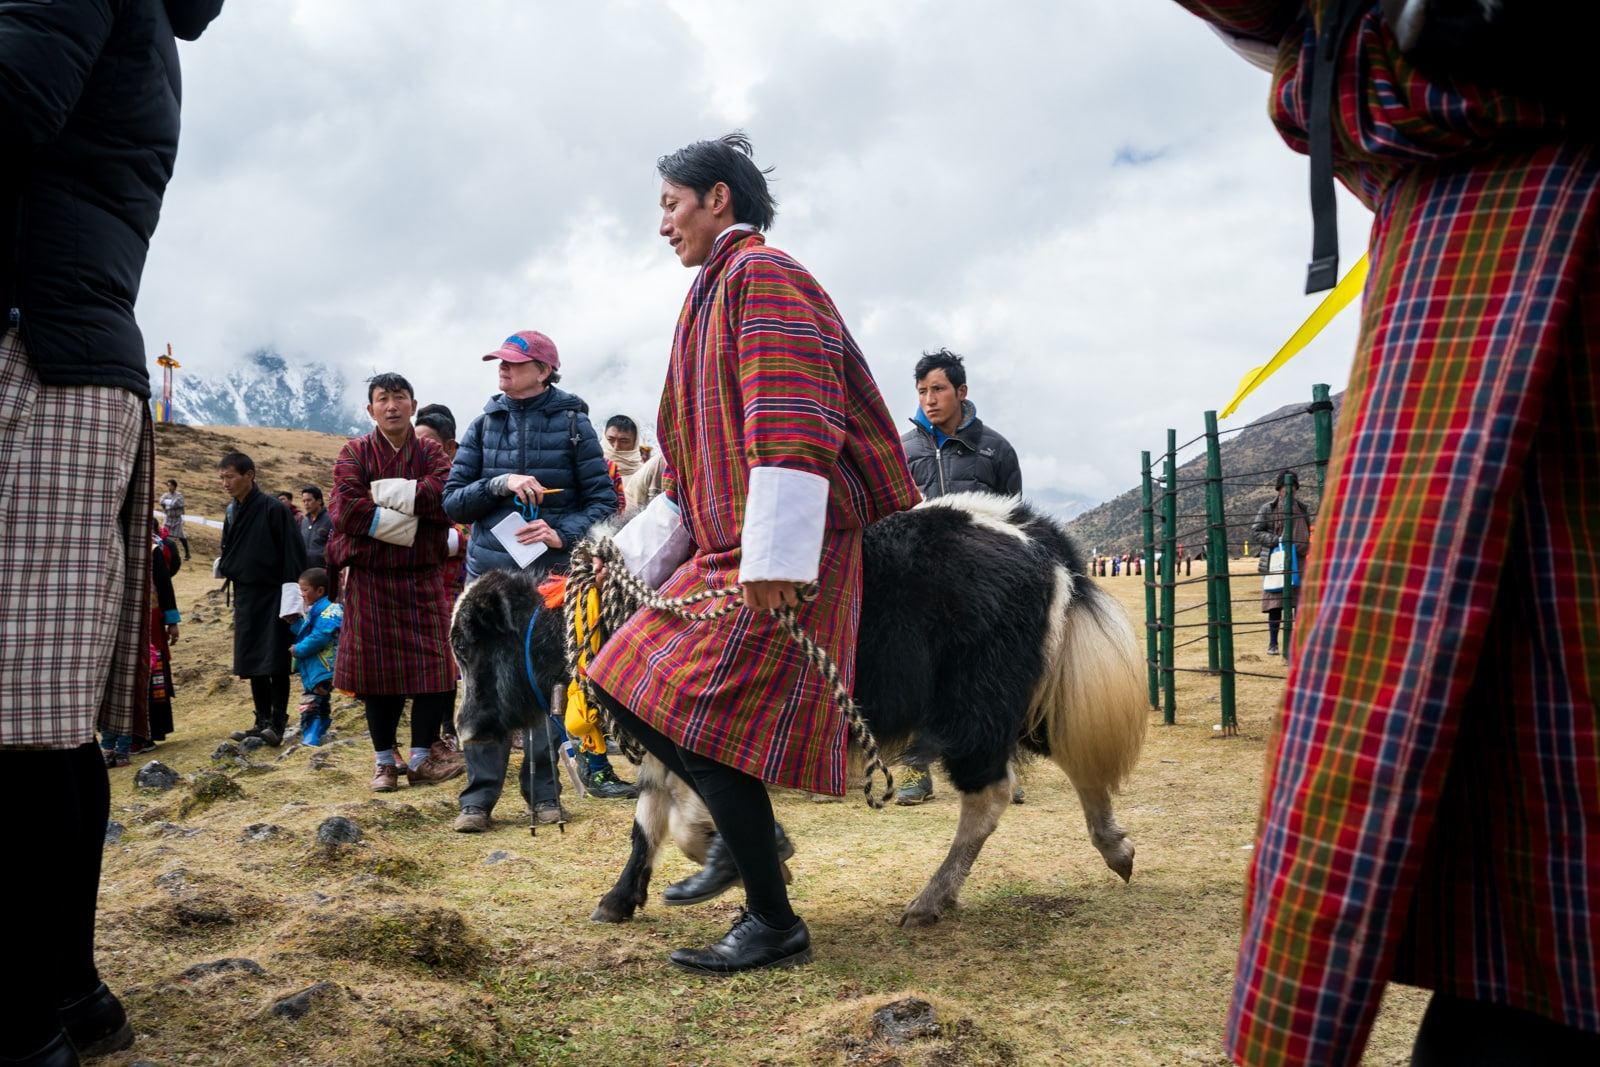 Photos of the 2017 Royal Highlander Festival in Bhutan - Man showing a baby yak at the festival - Lost With Purpose travel blog